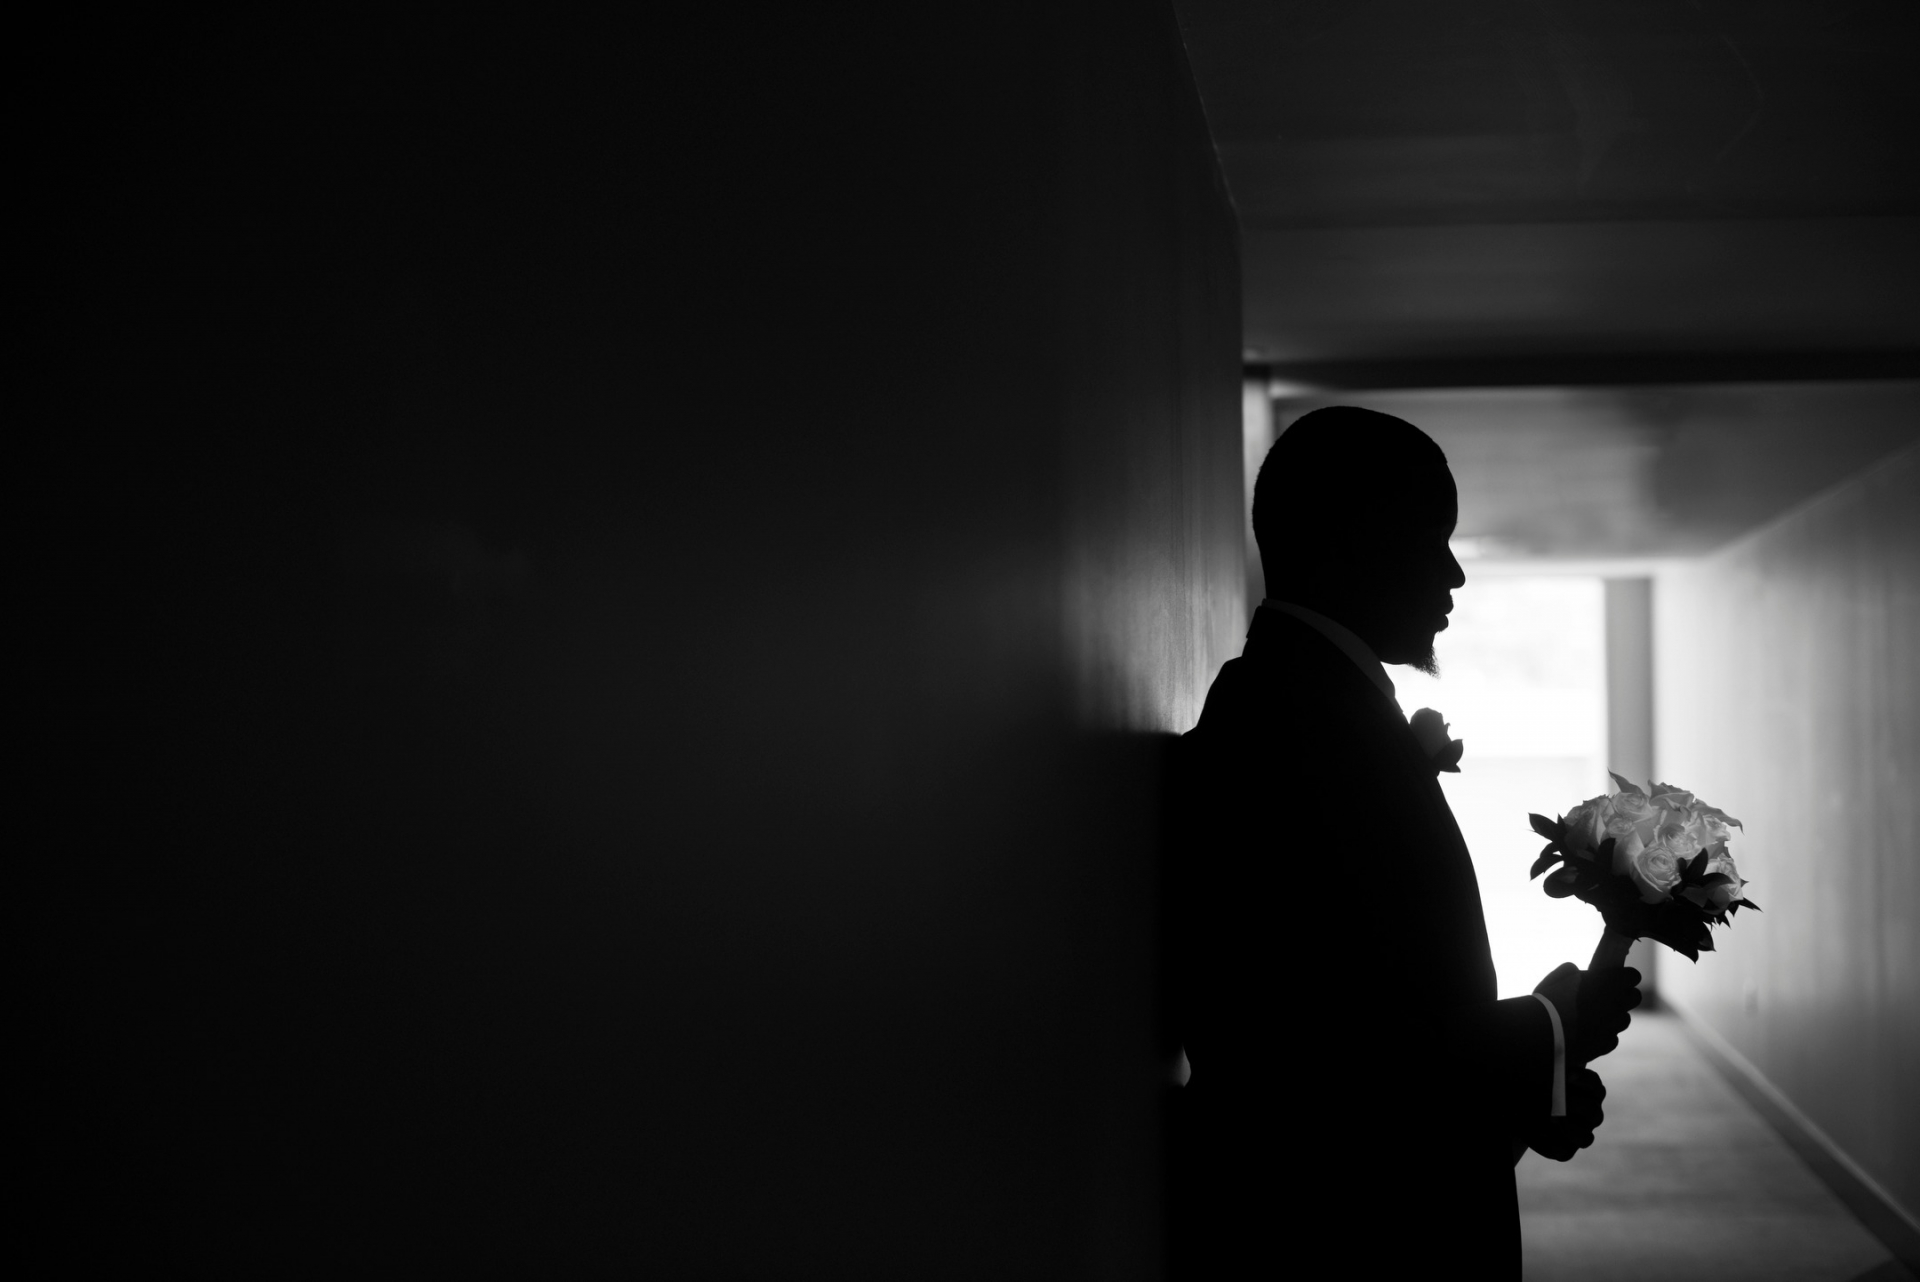 Mountain Shadows Resort Scottsdale, Arizona Elopement Photographer | With the bright light shining from behind him, we can only see the groom's silhouette as he stands in a hallway waiting for the bride as he holds her bouquet